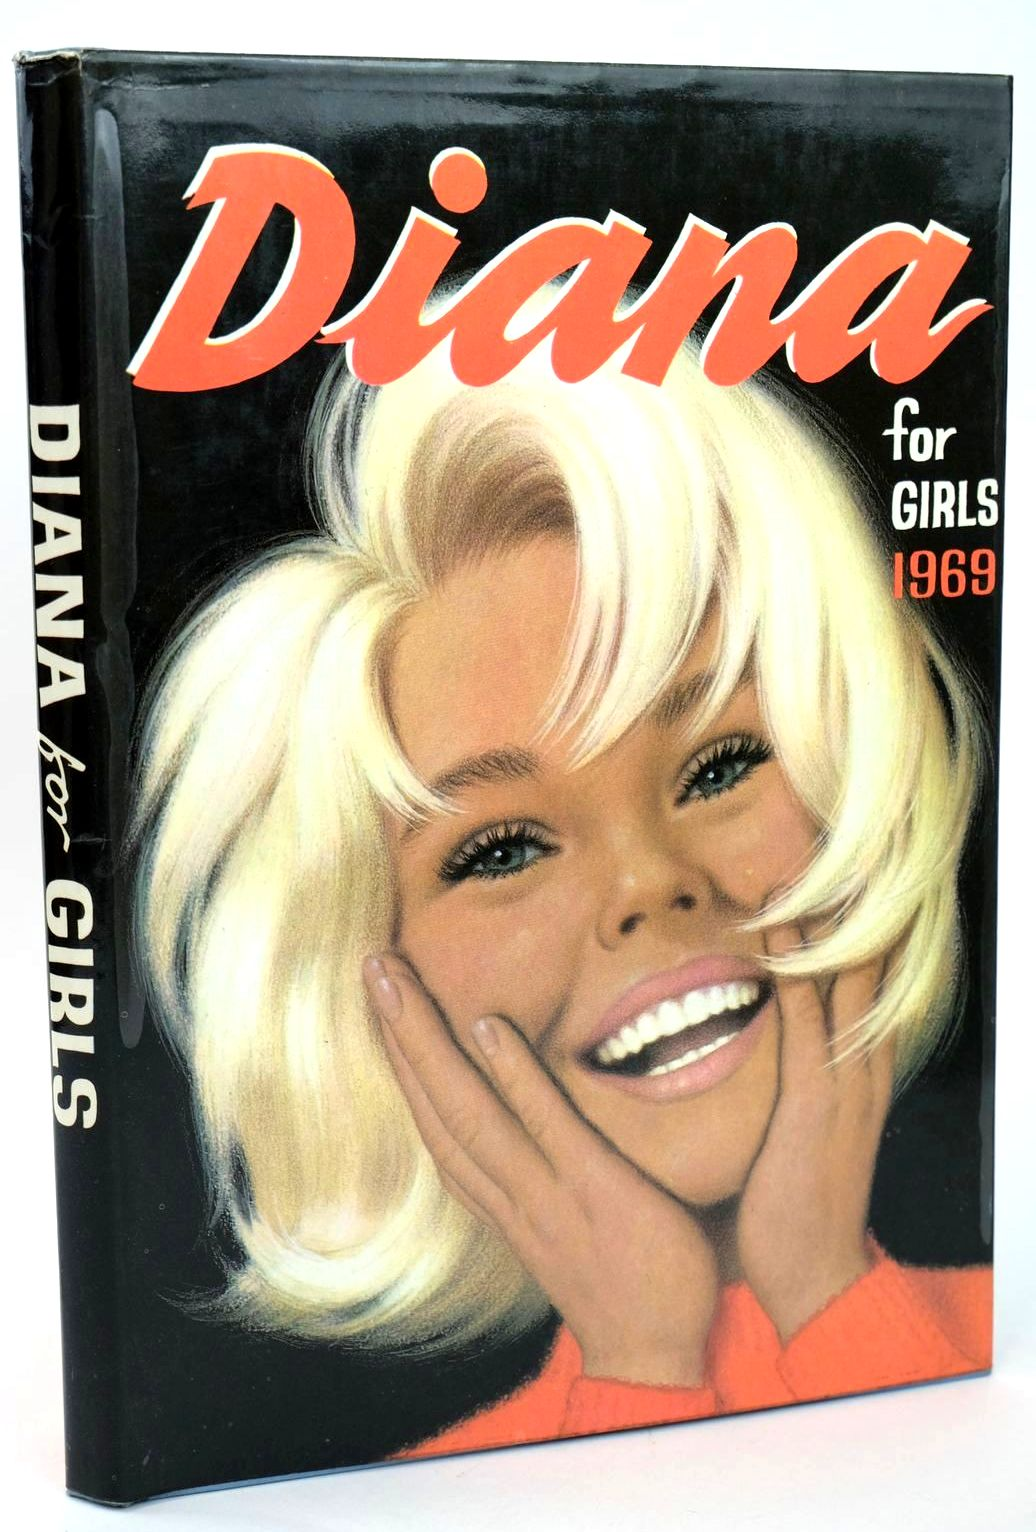 Photo of DIANA FOR GIRLS 1969- Stock Number: 1318533